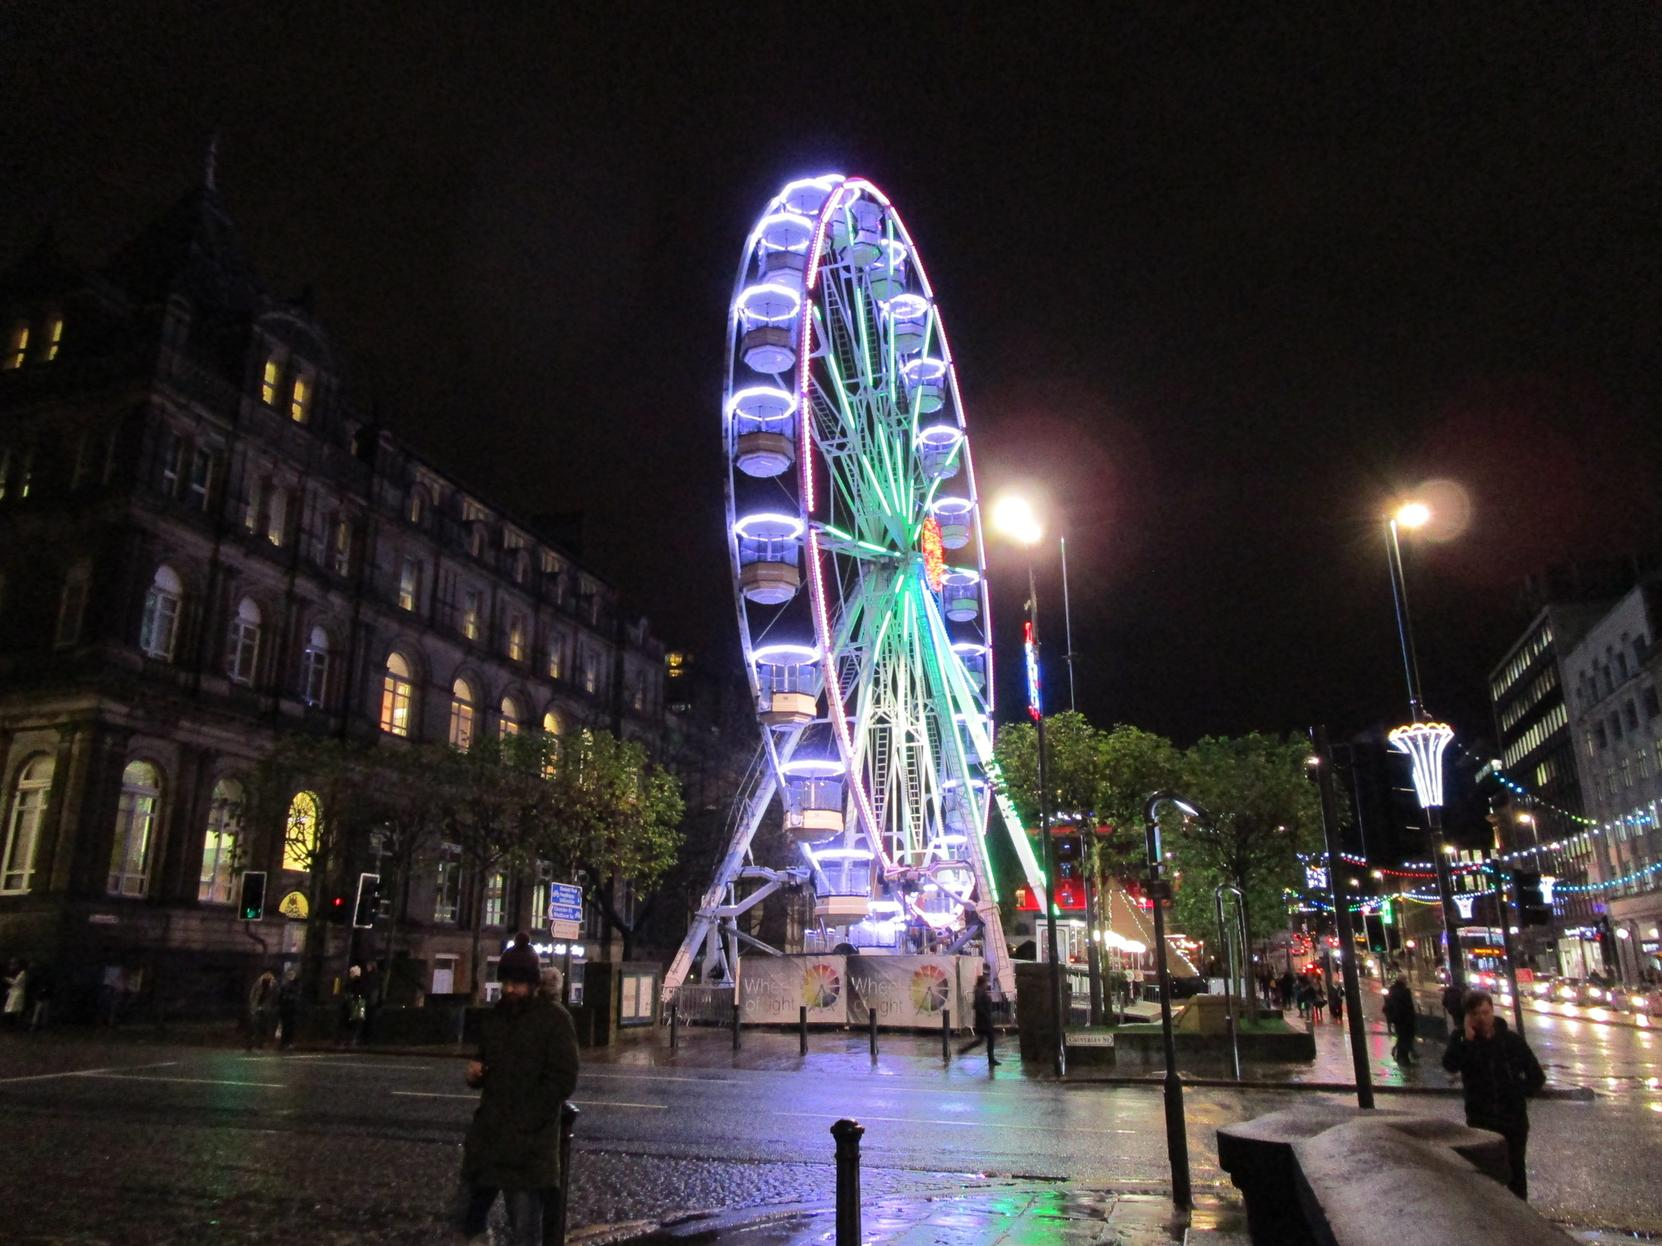 Leeds Wheel of Light back in city centre for Christmas: Here's everything you need to know